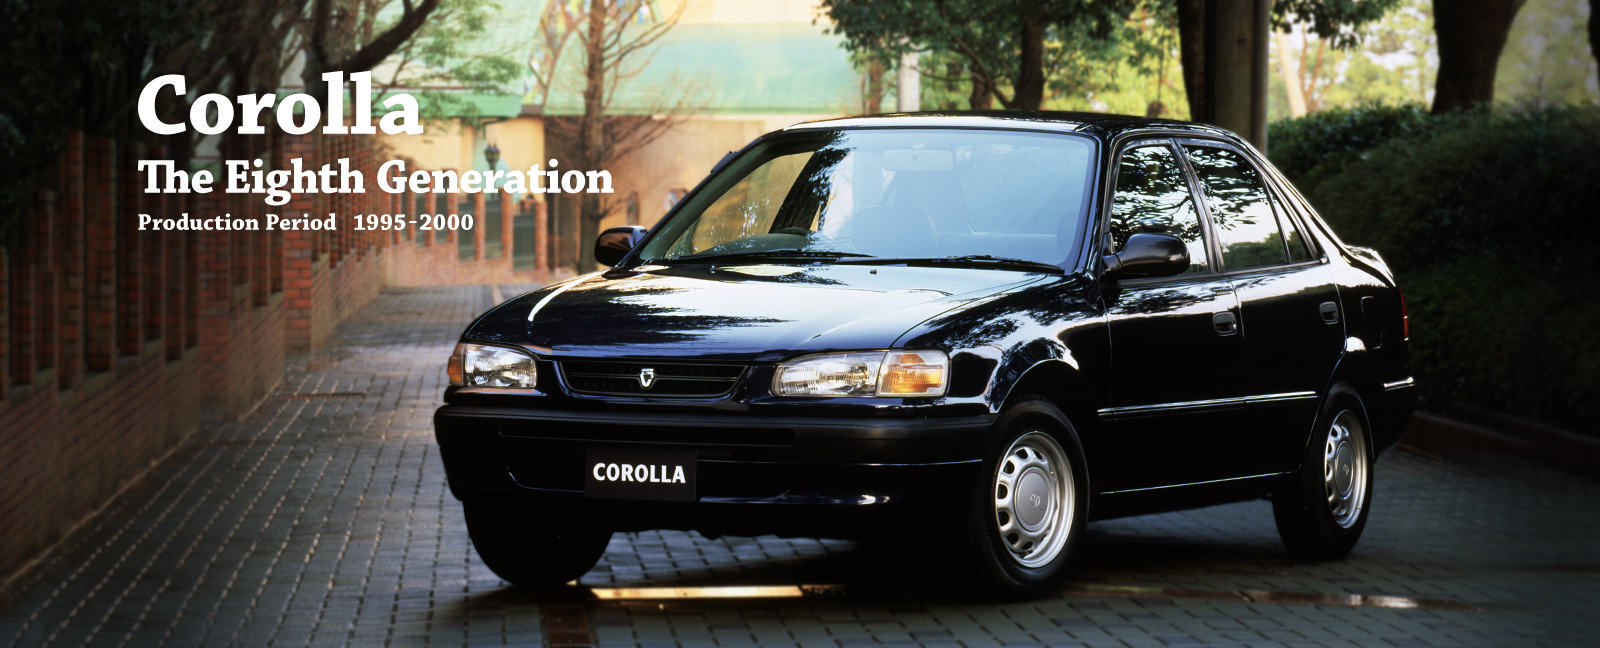 Vehicle Heritage, Corolla, The Eighth Generation